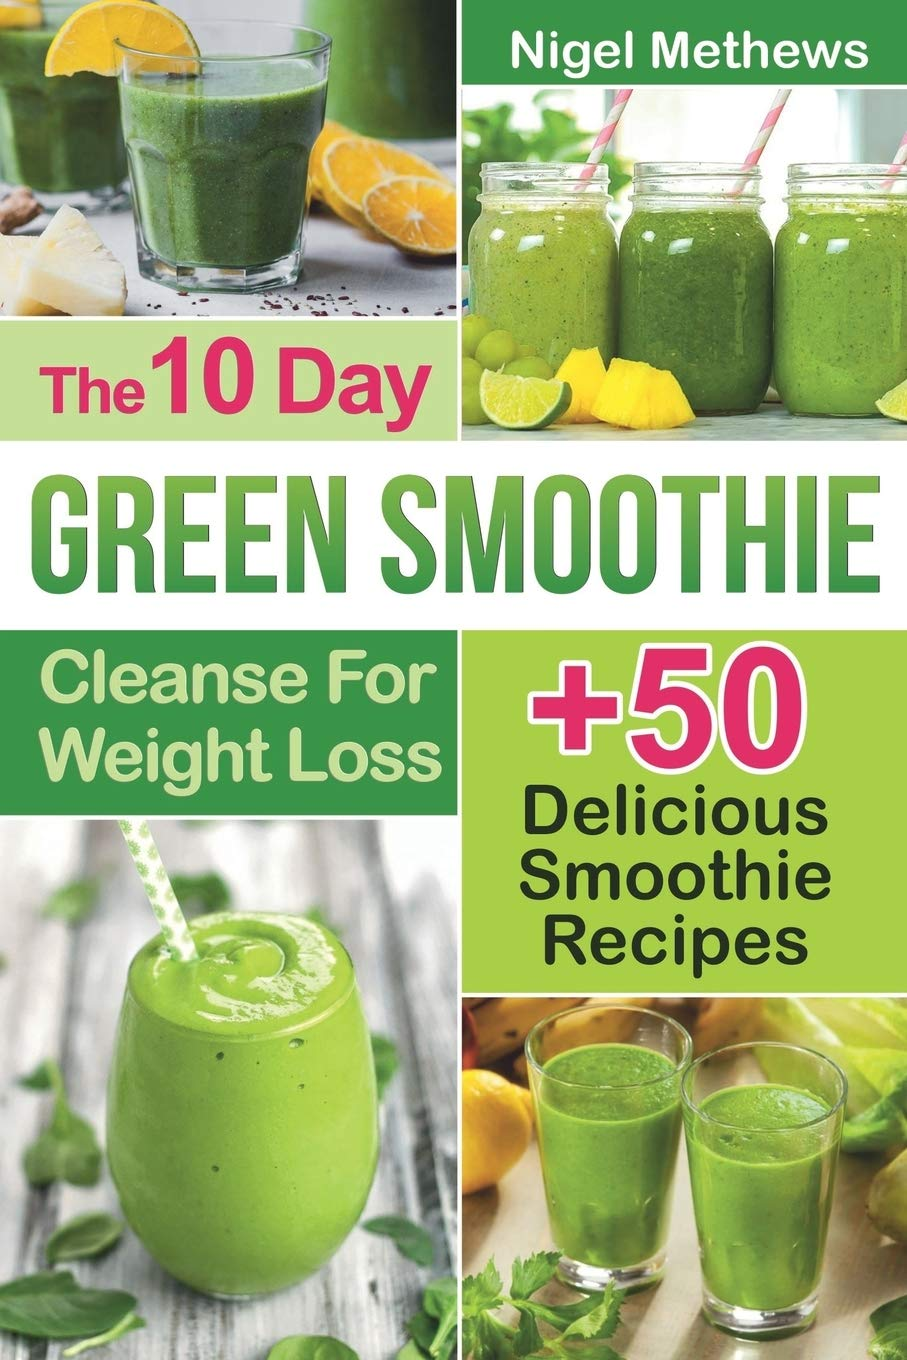 The 10-Day Green Smoothie Cleanse For Weight Loss: 10 Day Diet Plan+50 Delicious Quick & Easy Smoothie Recipes For Weight Loss 1